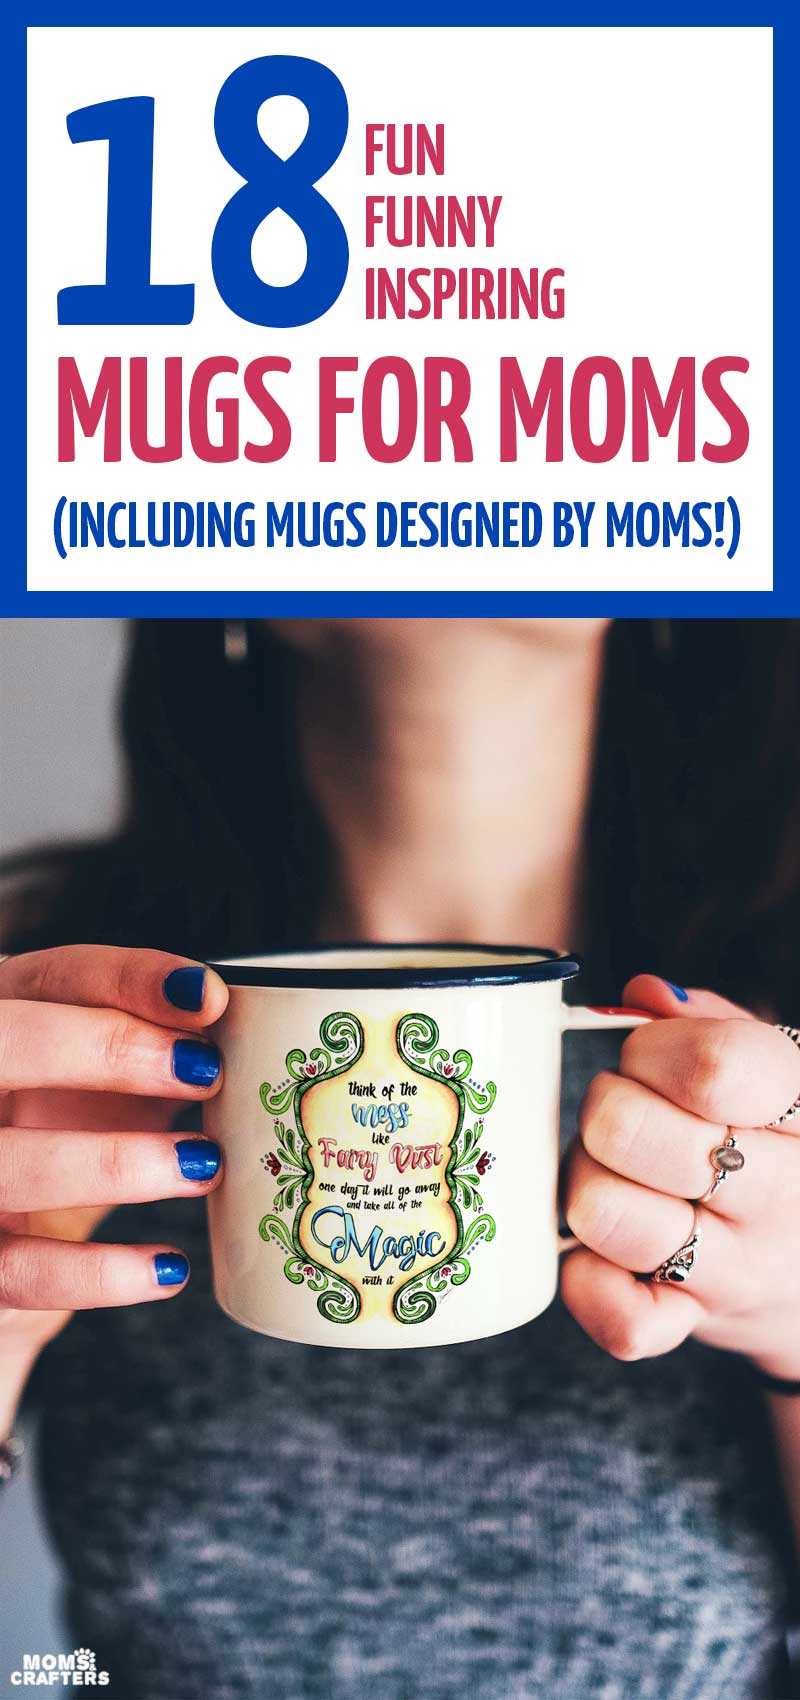 These 18 mom mug ideas are truly unique and worth giving! A coffee mug makes the perfect gifts for moms who live off of coffee... Give these mom mugs for Christmas, for Mother's day, or to show your appreciation any day! Whether it's for your daughter, a friend who is a mom, or your own mother, these mom mug gift ideas are perfect.